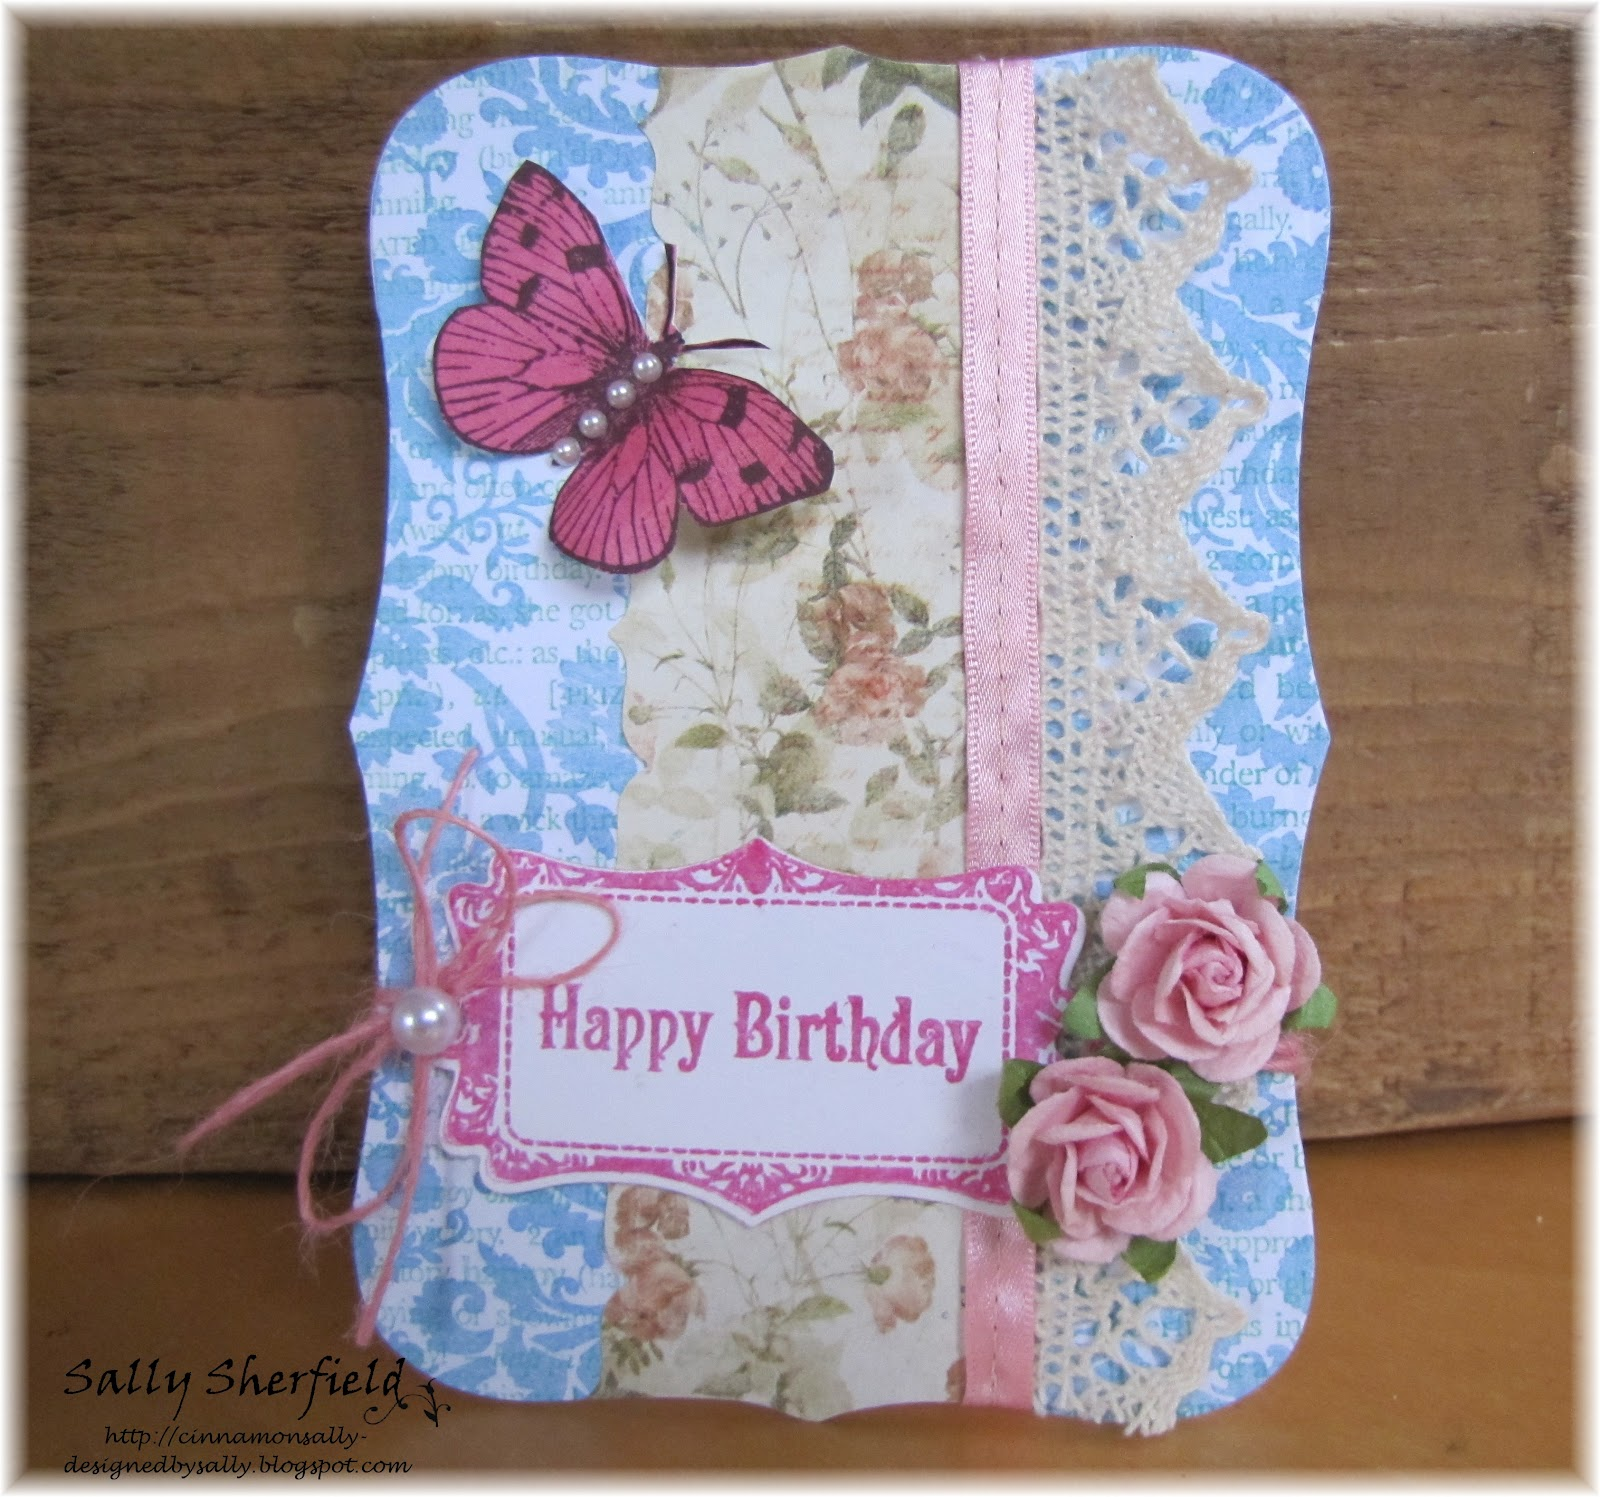 Cinnamon Sally Designs: Two challenges, two cards!!